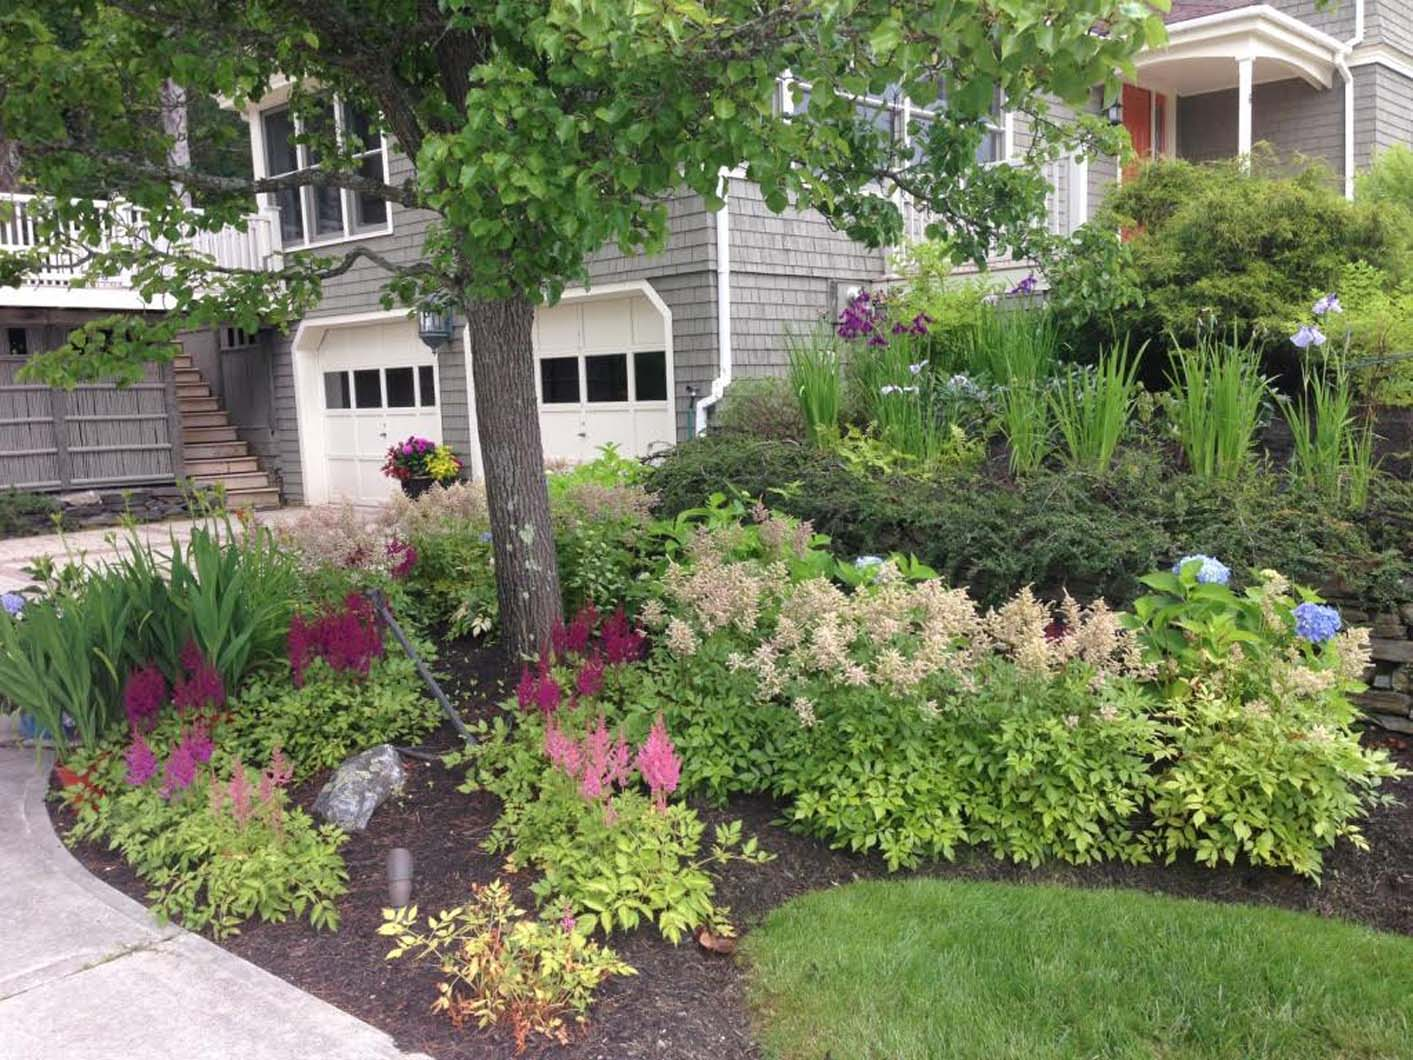 Backyard Clean Up Lawn Care Services Clean Up Westbrook Gorham Portland Me